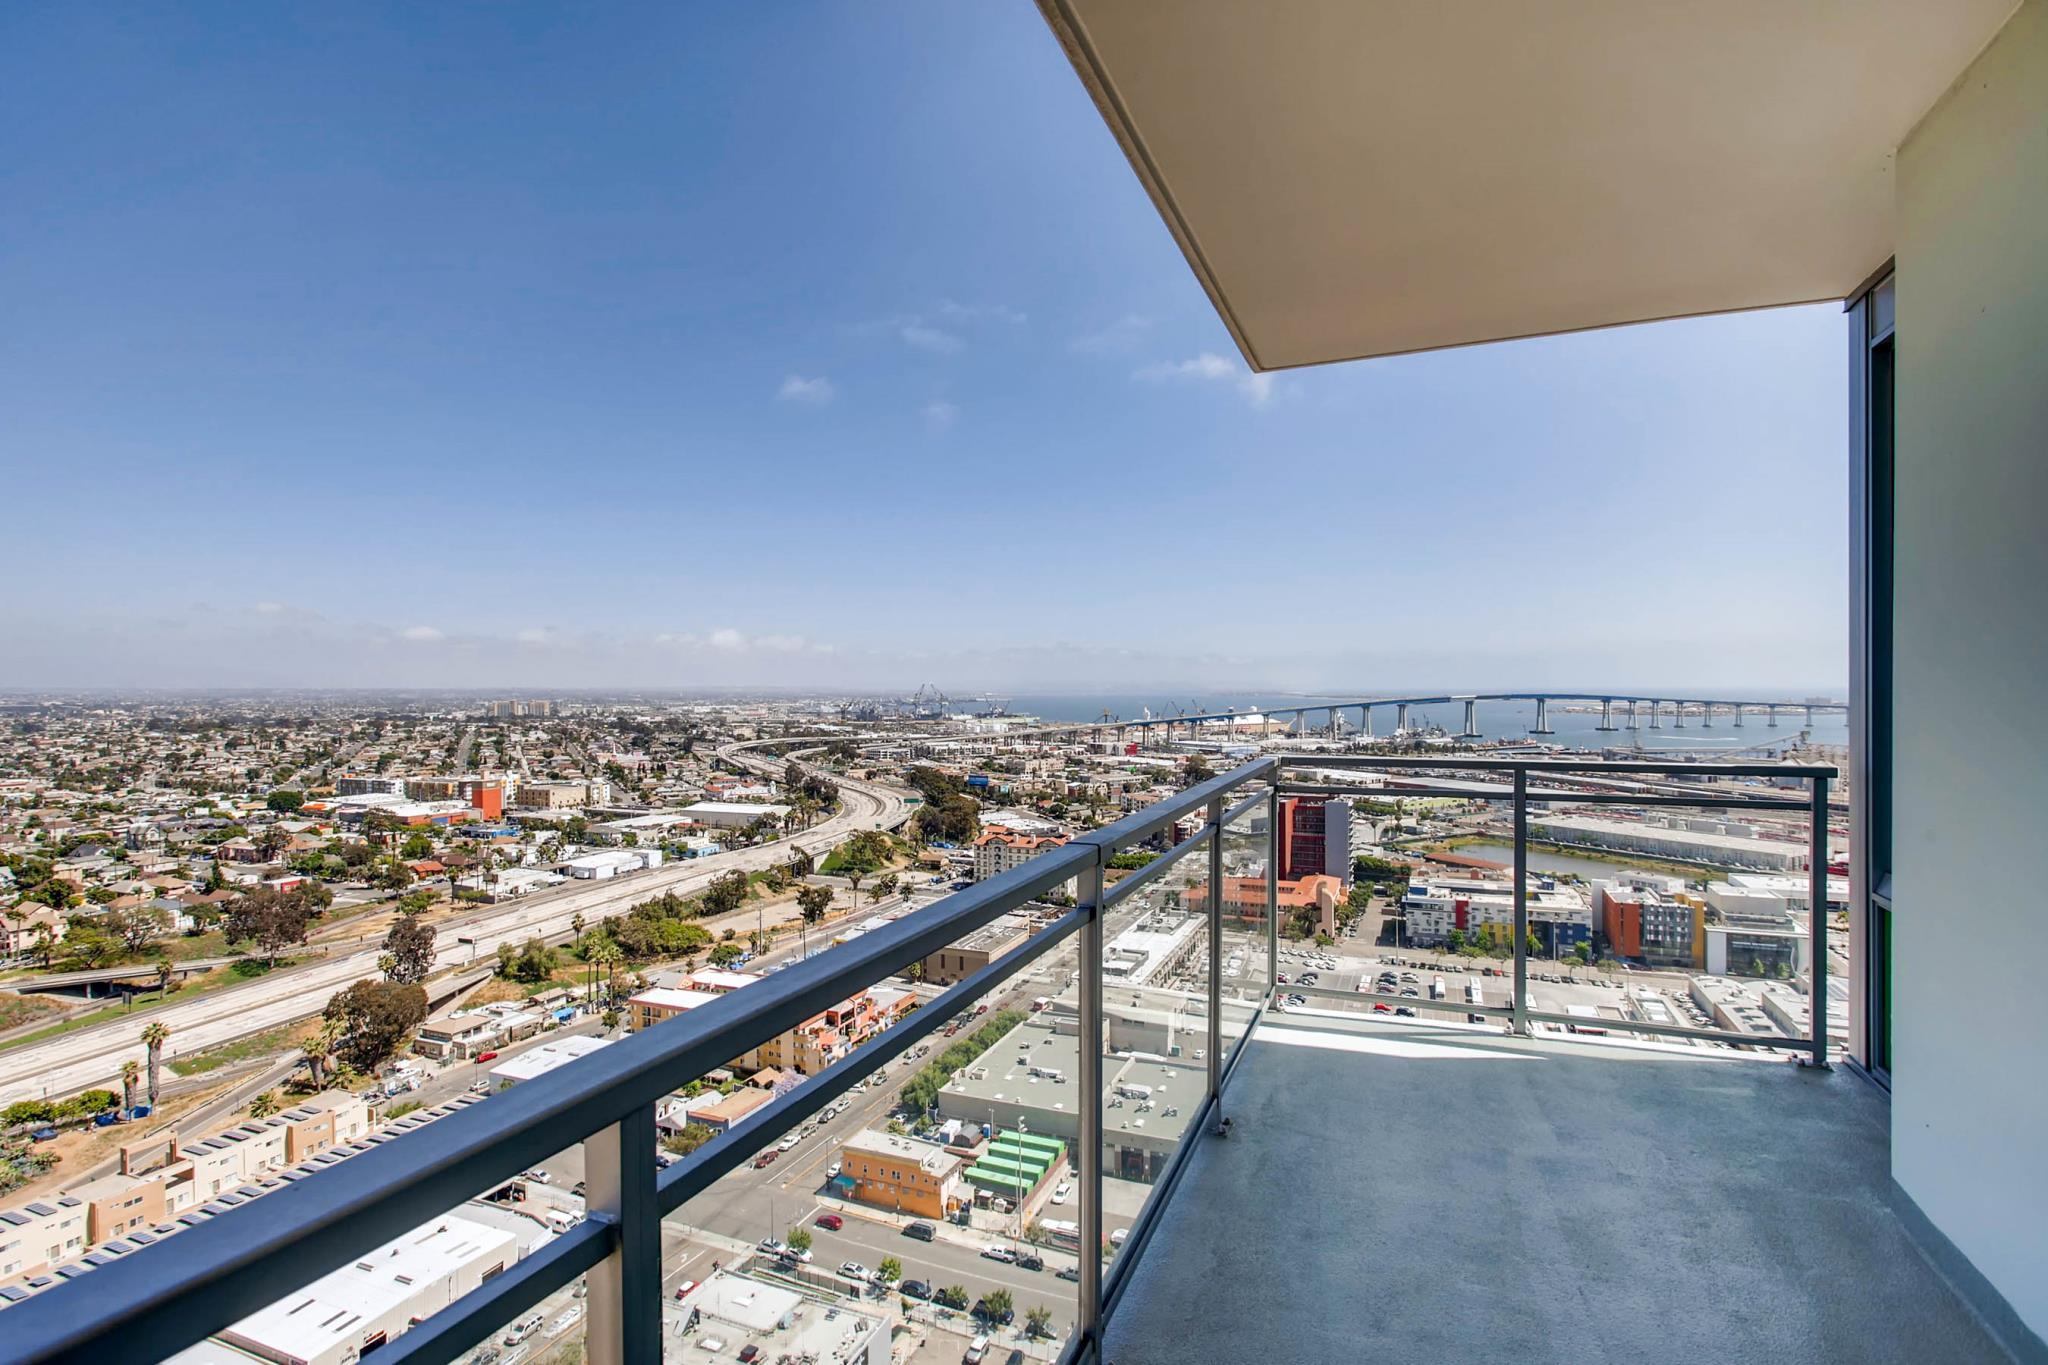 Luxury 2B/2B W Views. Walk to Convention Center!